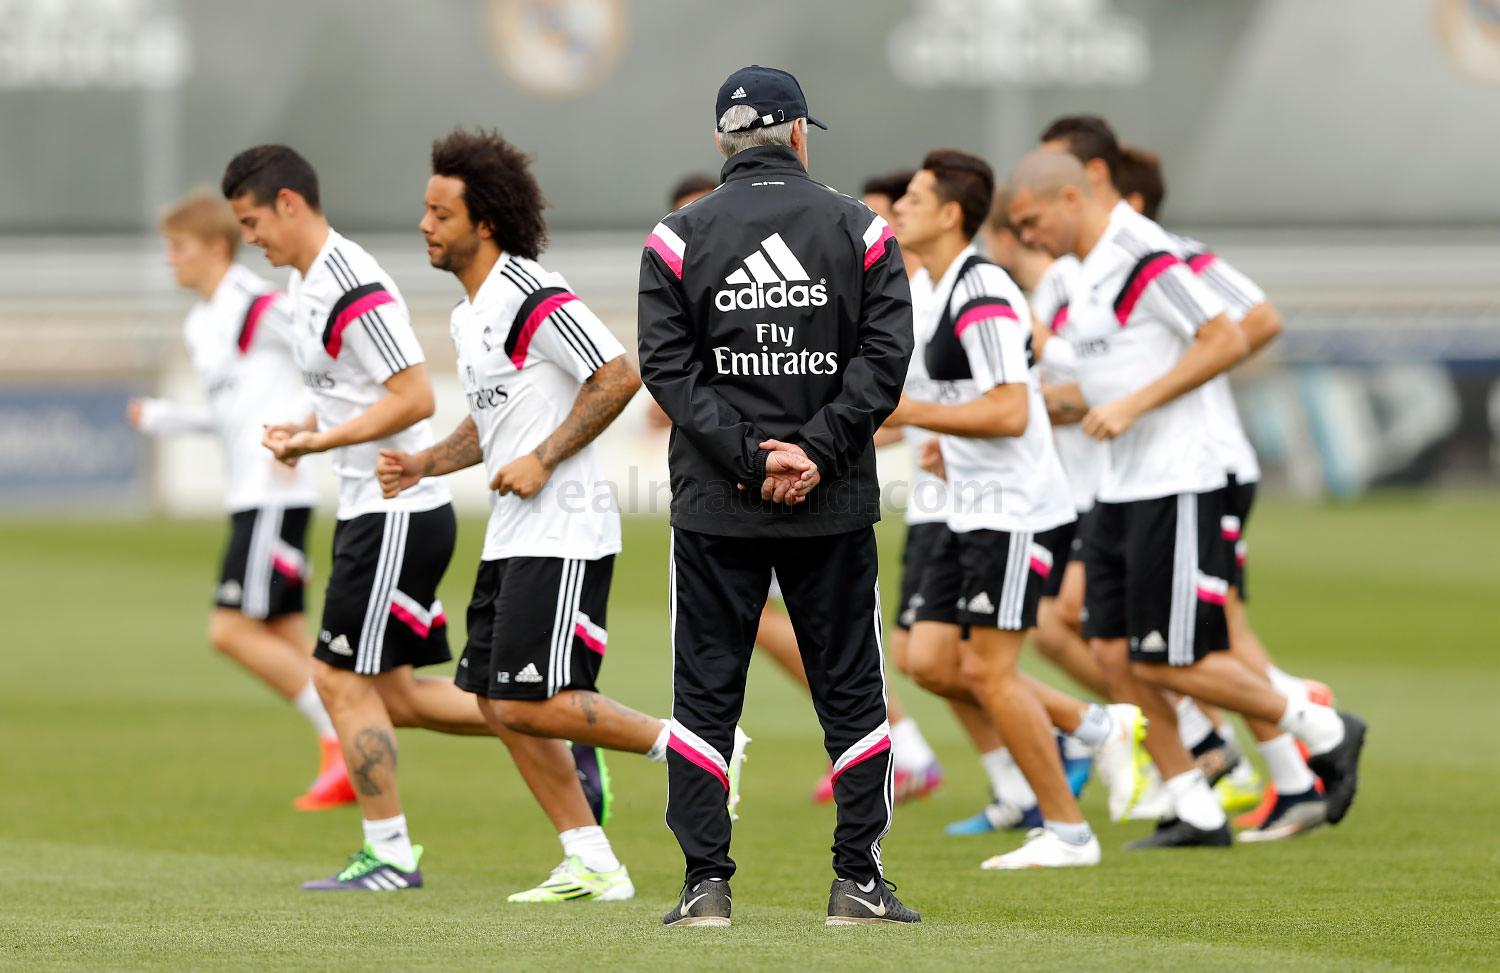 Real Madrid - Entrenamiento del Real Madrid - 24-04-2015